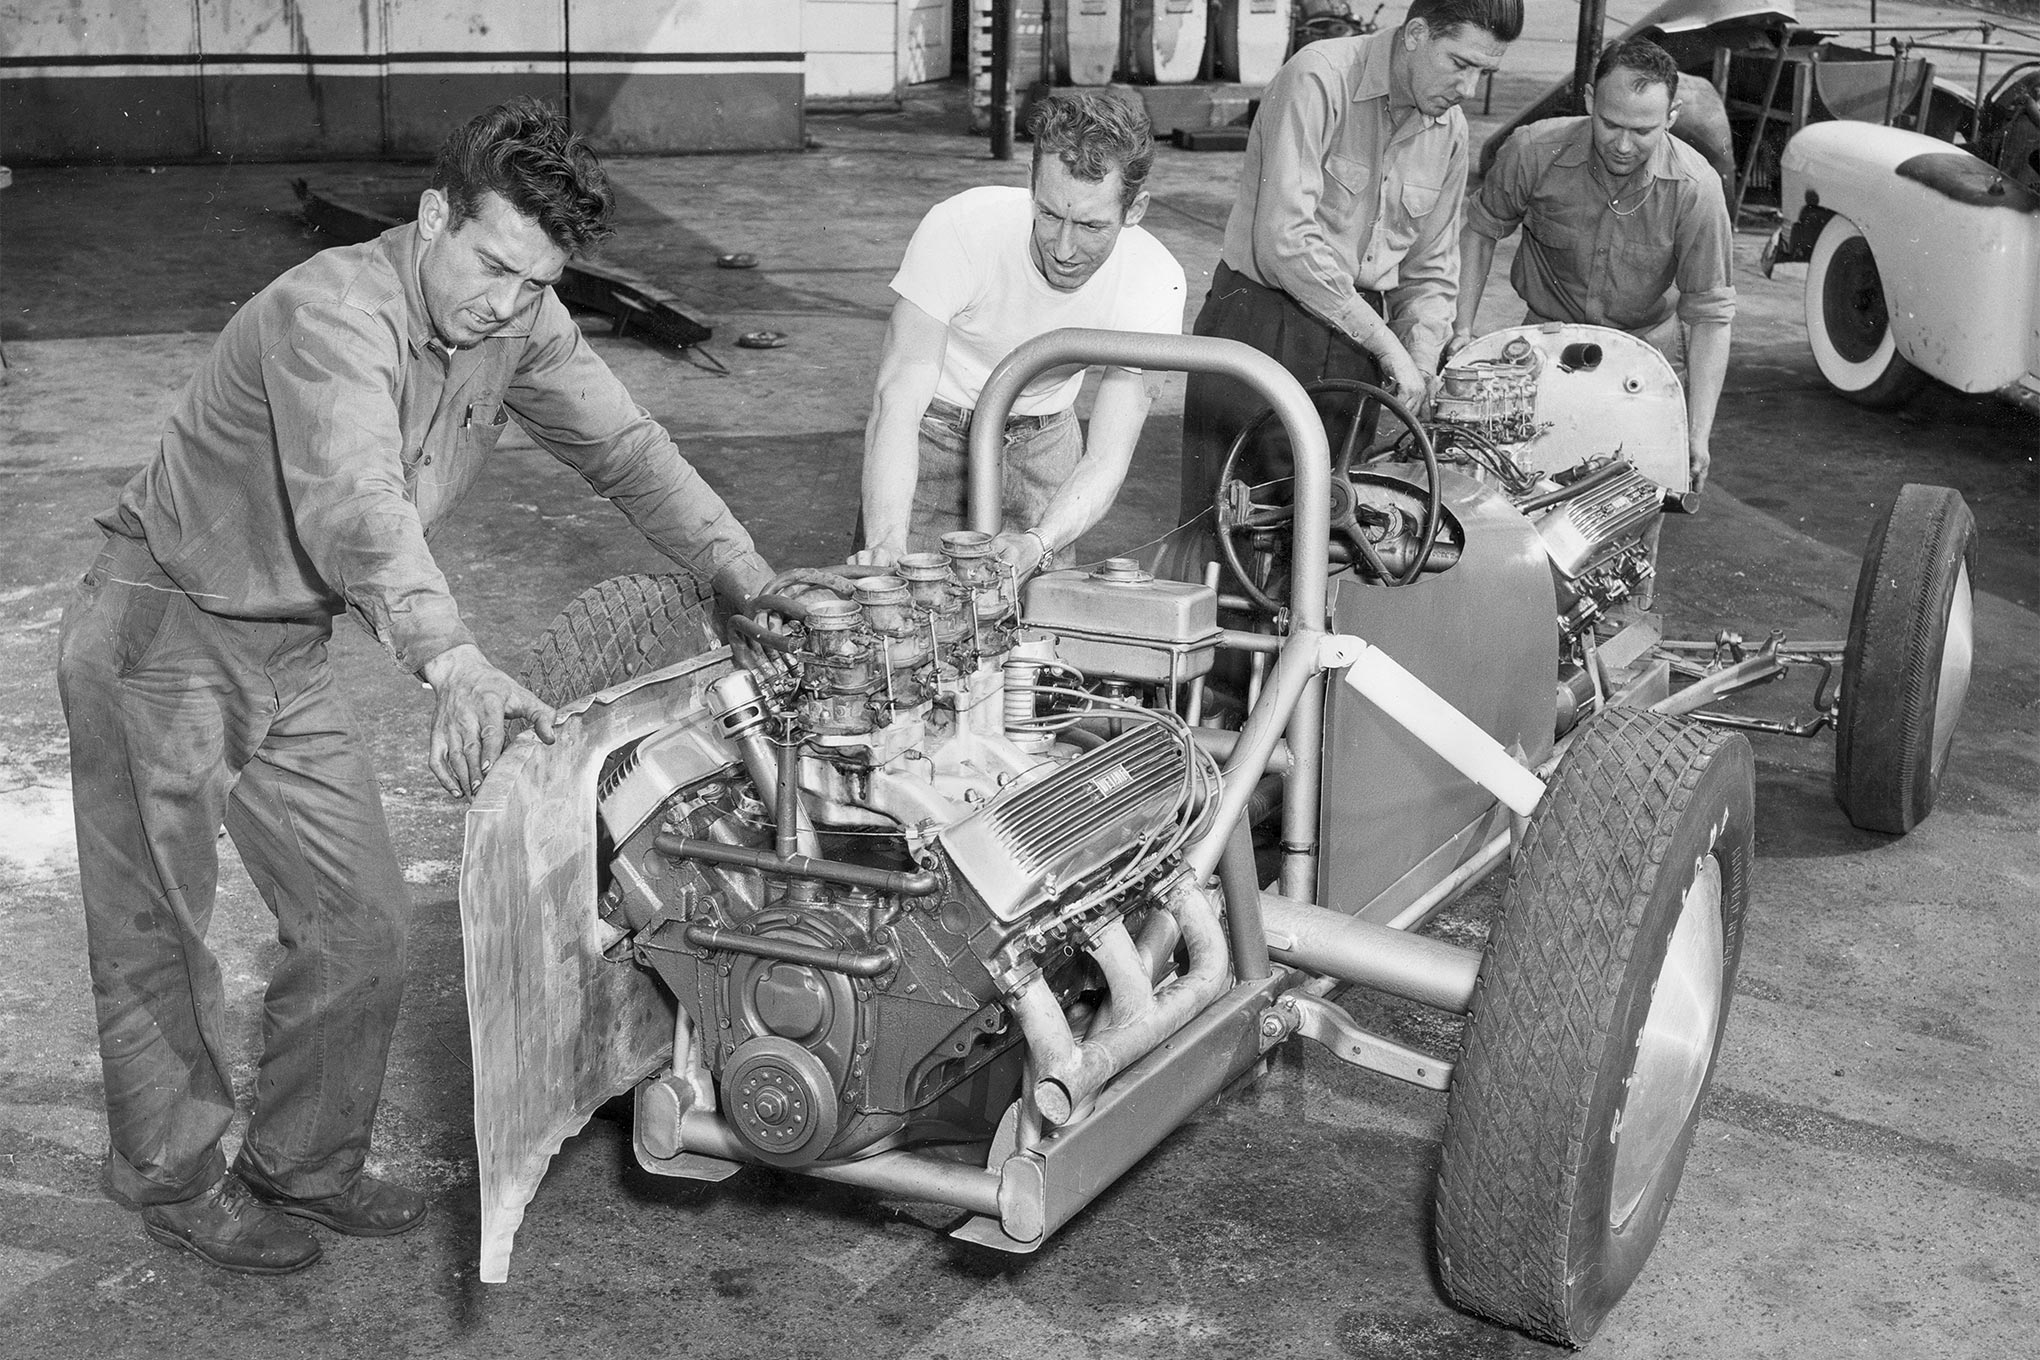 Four of the Bustle Bomb crew fabricating the rear section to fulfill sponsorship space with Howards Cams. That's George Smith, Lloyd Scott, Harold Allison, and Noel Timney.